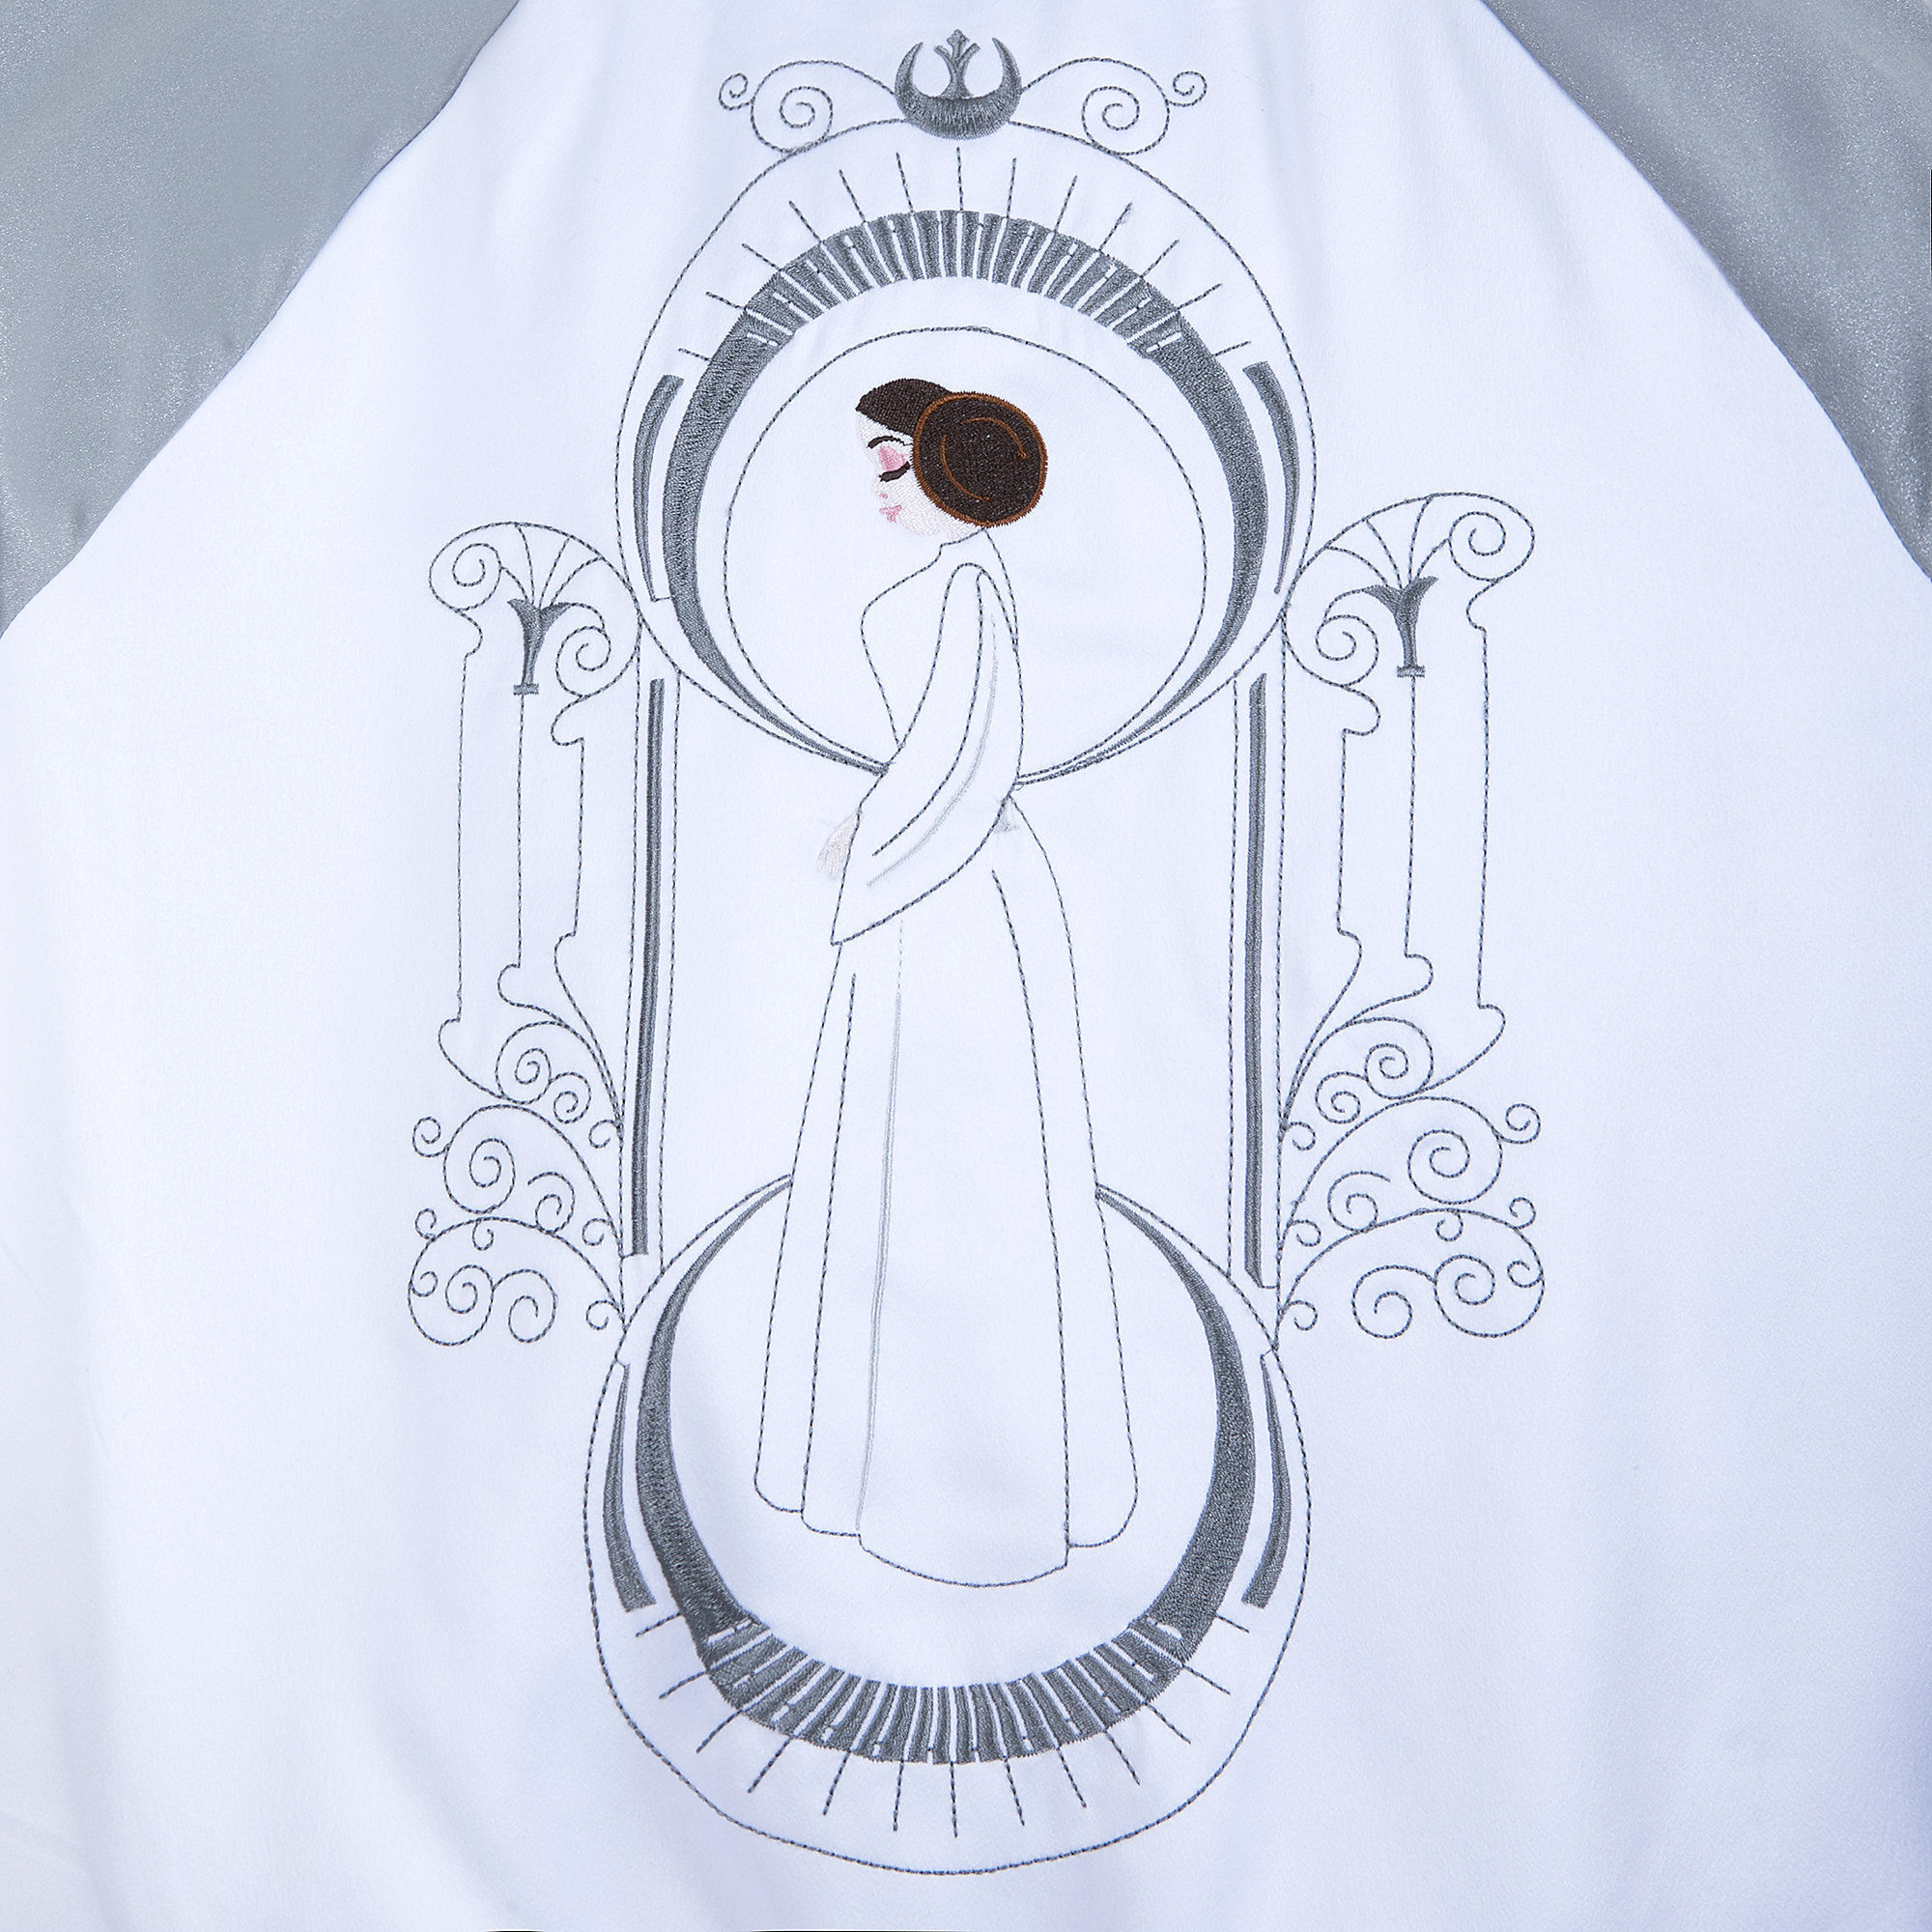 Our Universe x Star Wars Princess Leia Varsity Jacket at Shop Disney